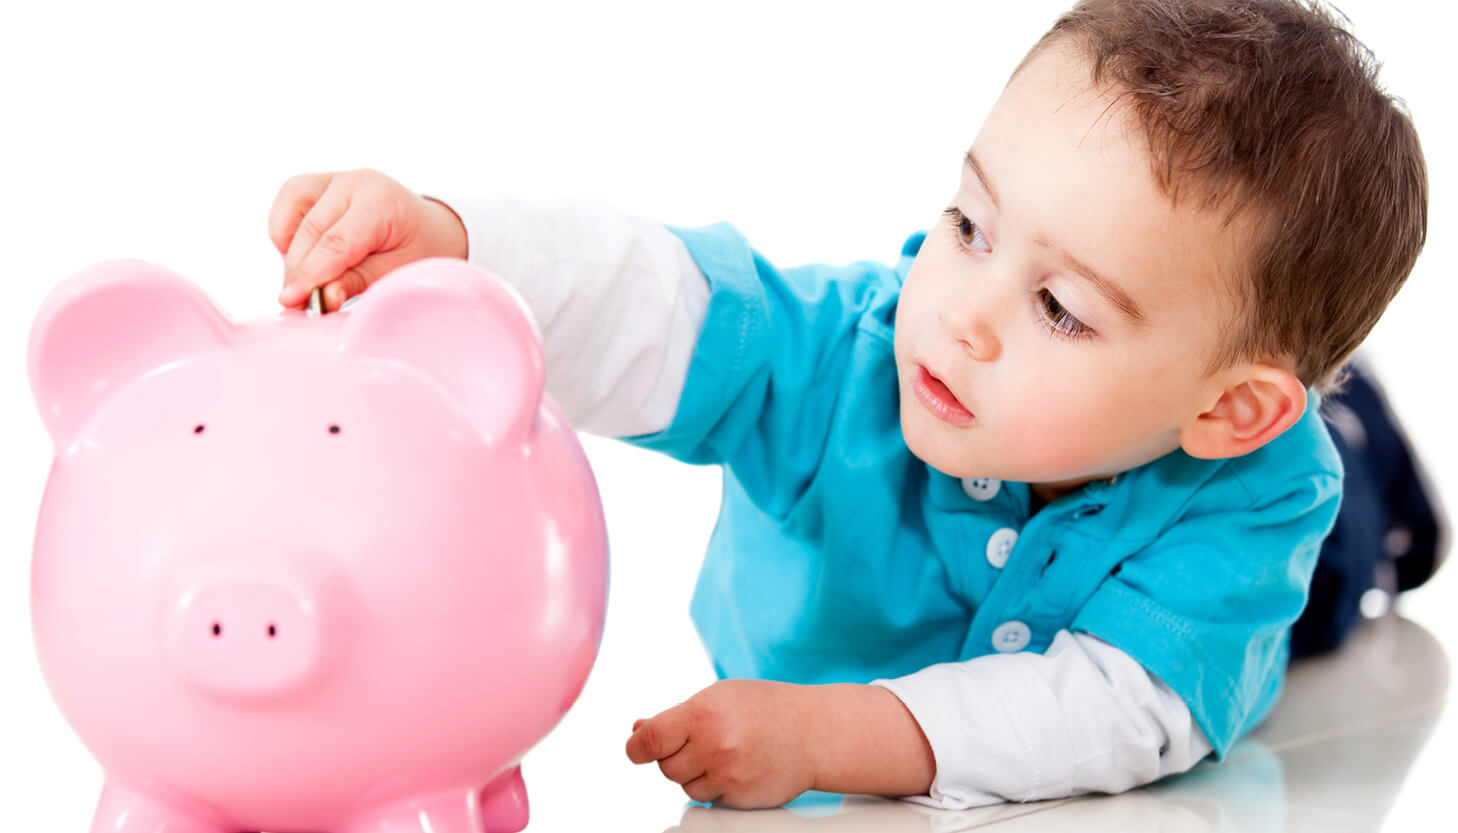 Teaching Children About Money 6 Things They Need To Know